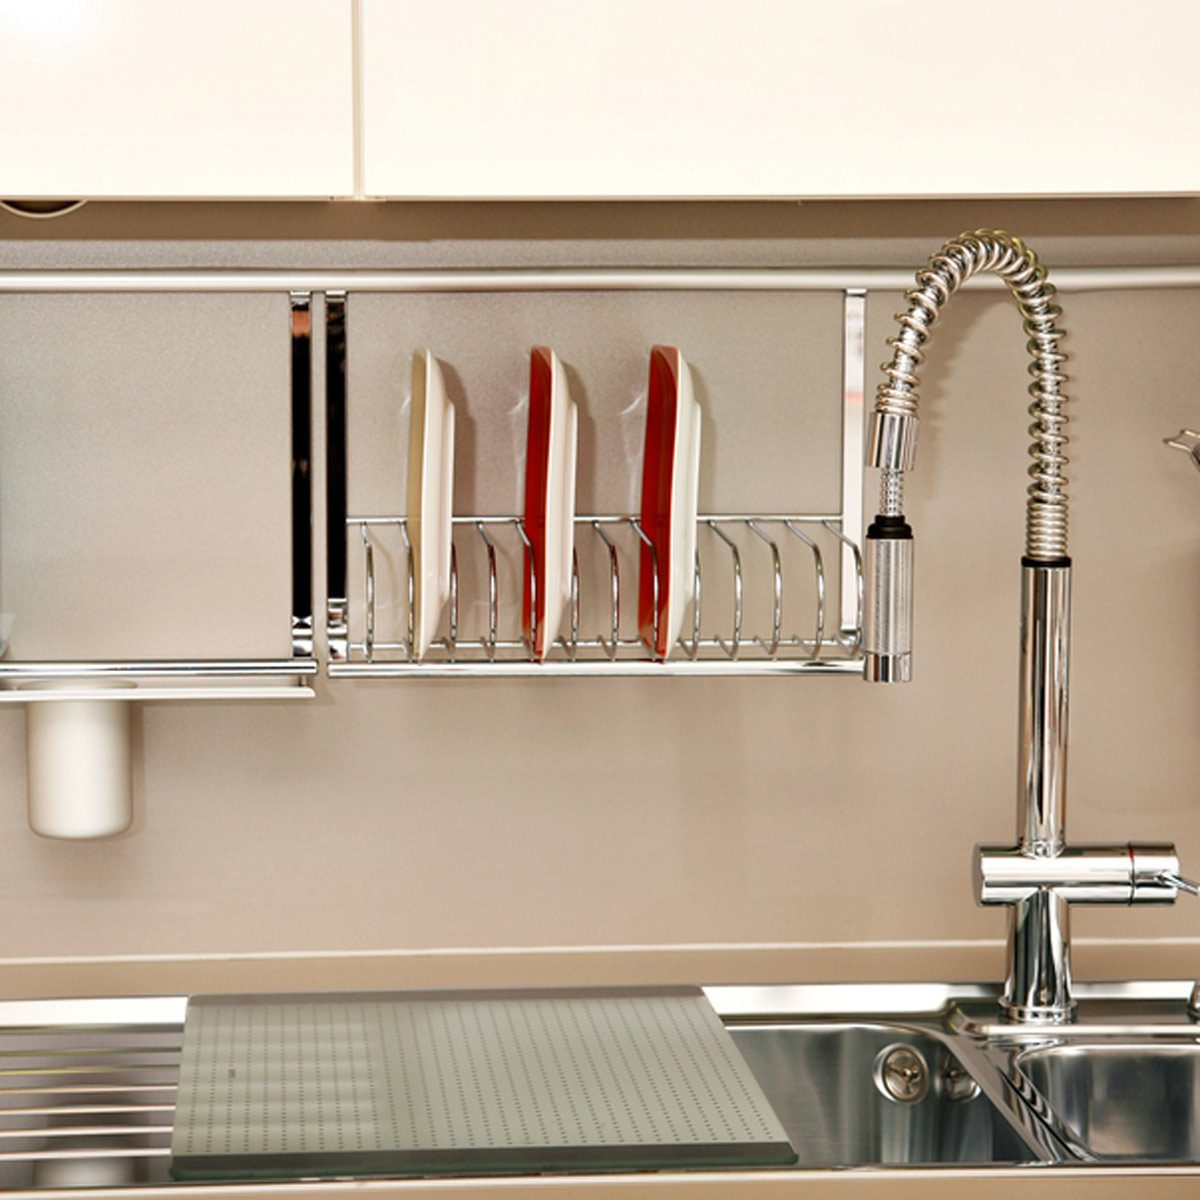 shutterstock_131620481 above the sink kitchen storage rack